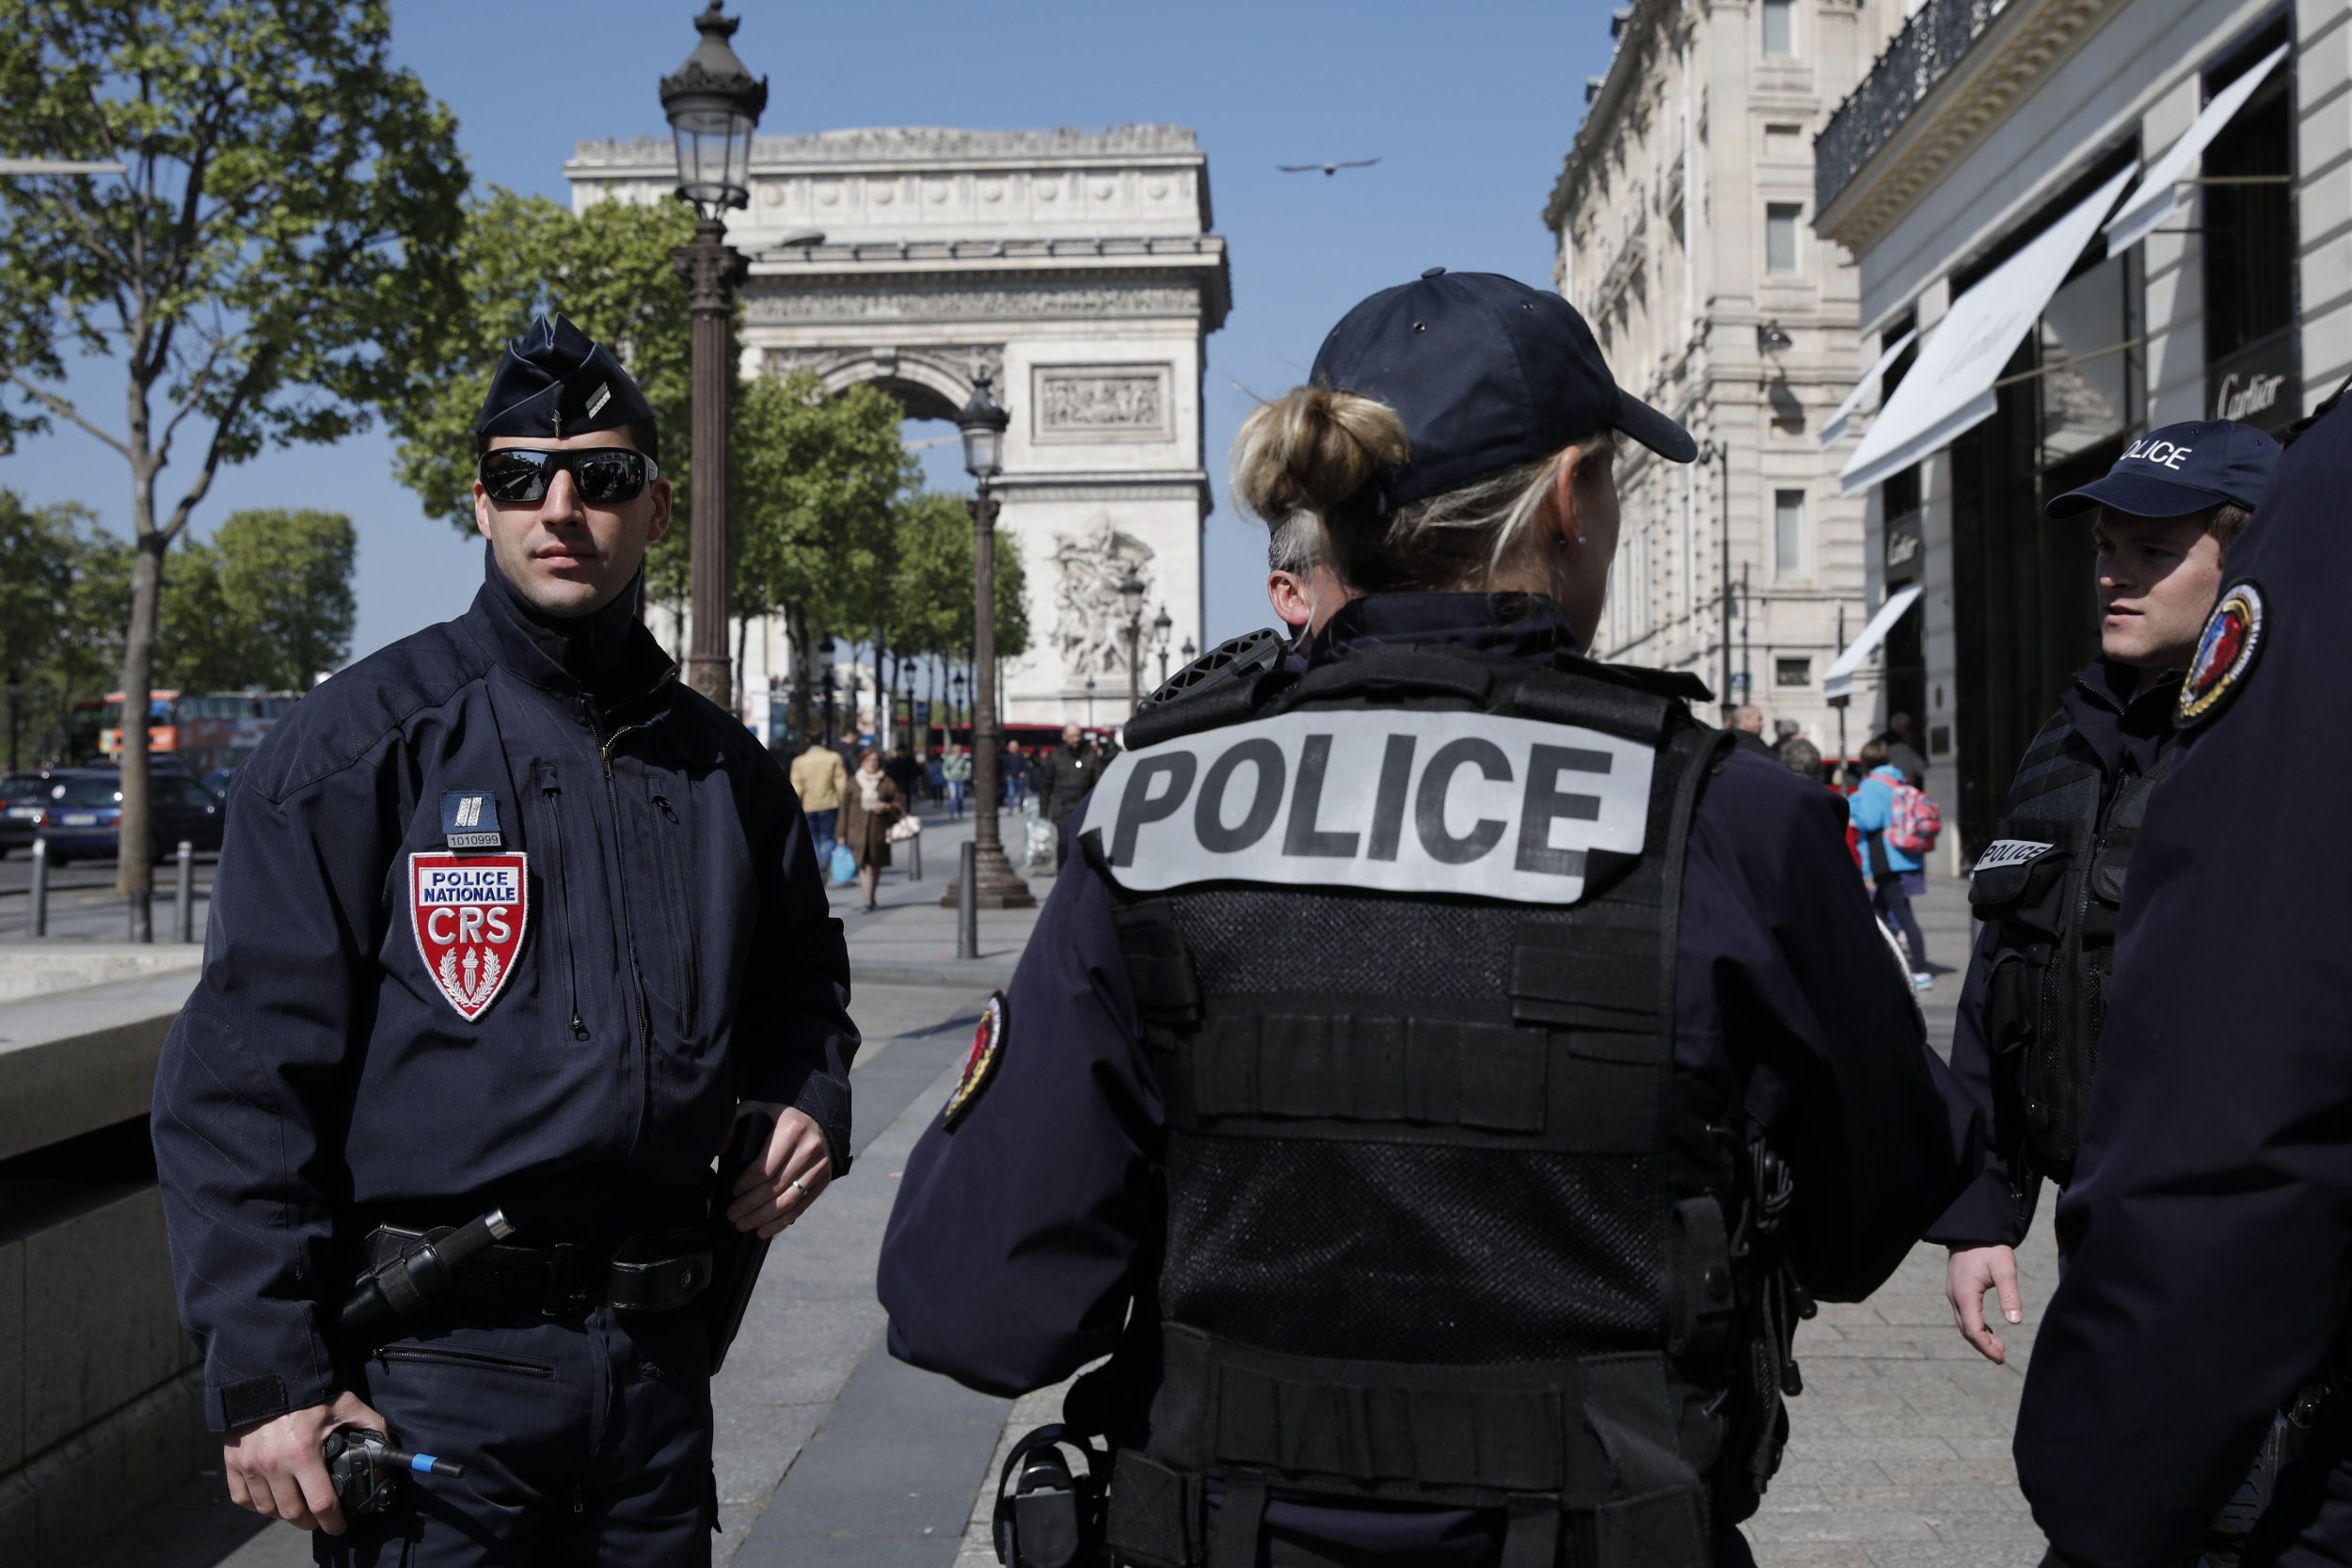 Champs-Élysées Attack Strikes a Country Where Police Are ...